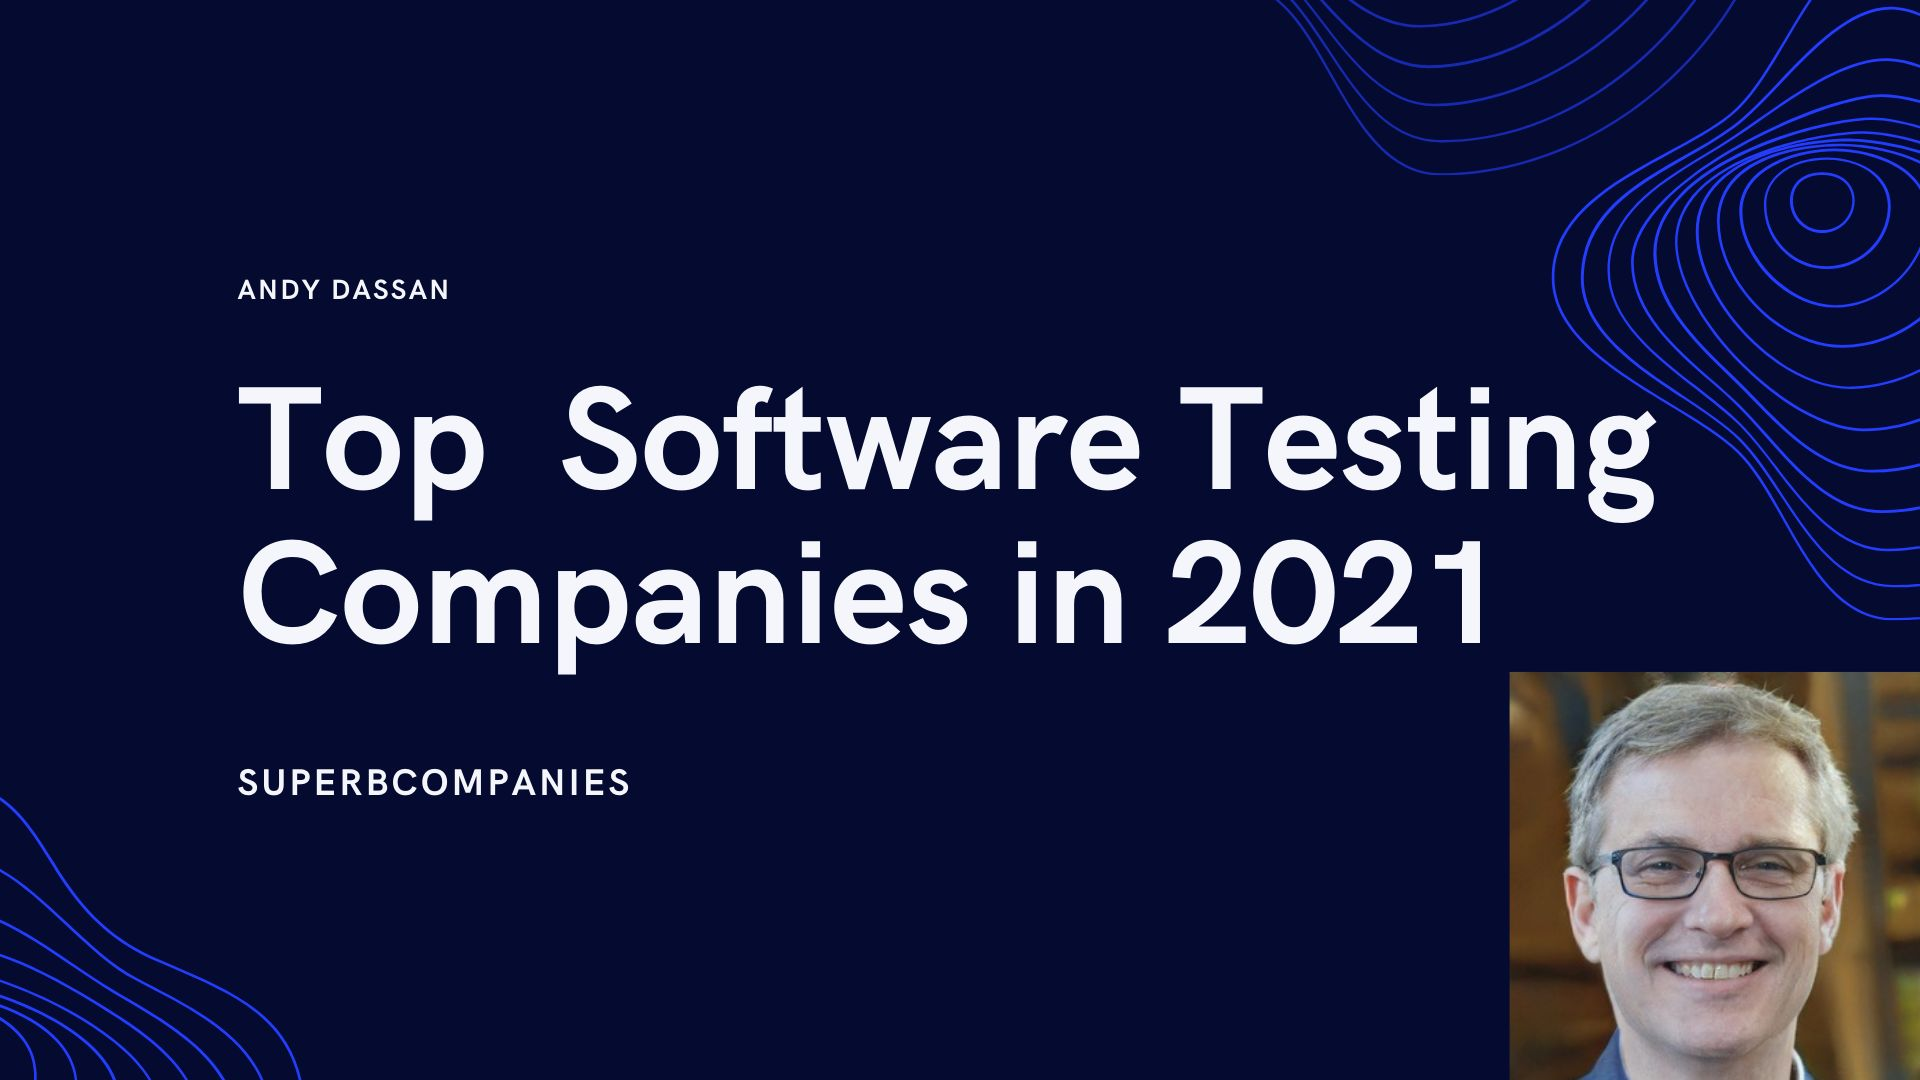 /top-10-software-testing-companies-for-2020-fiff3ubf feature image